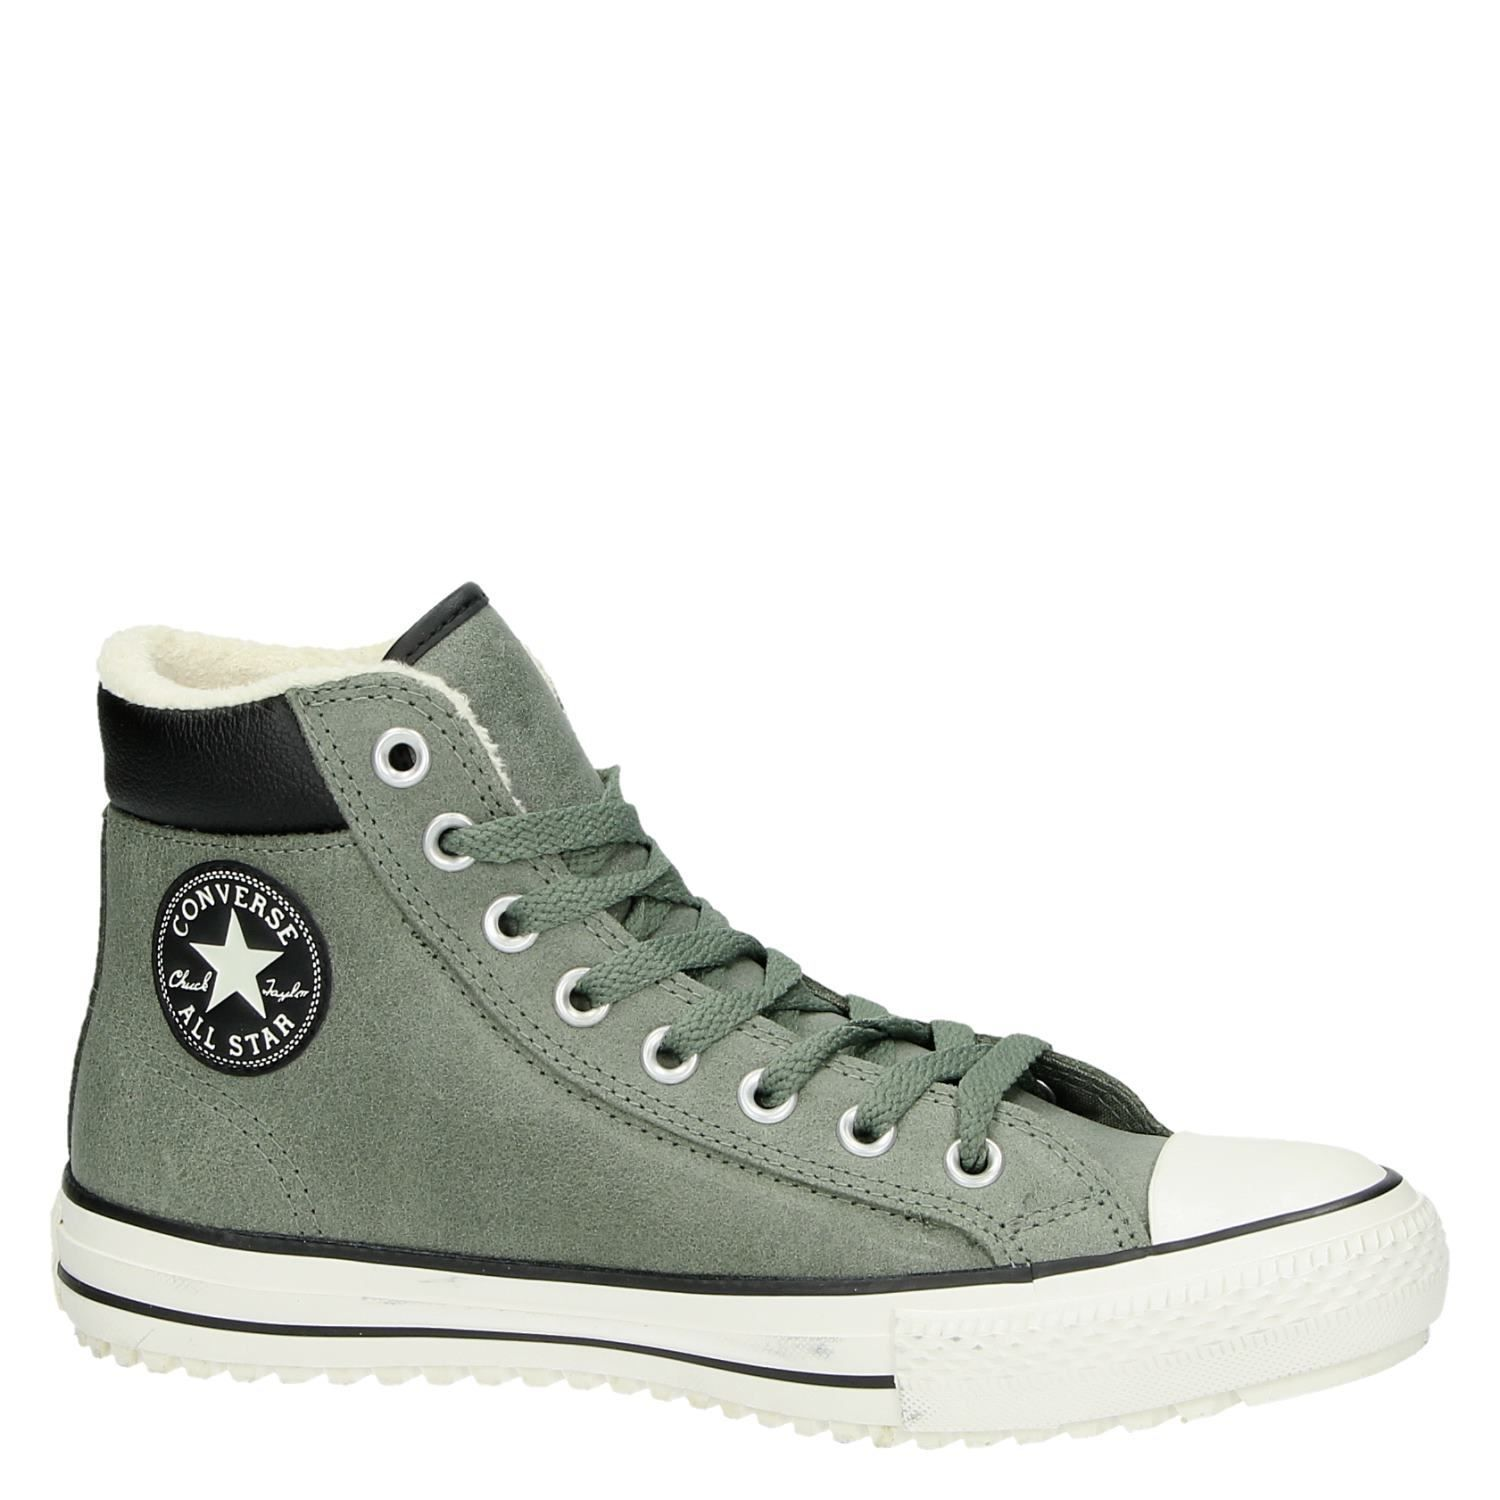 Pin on High Top Sneakers